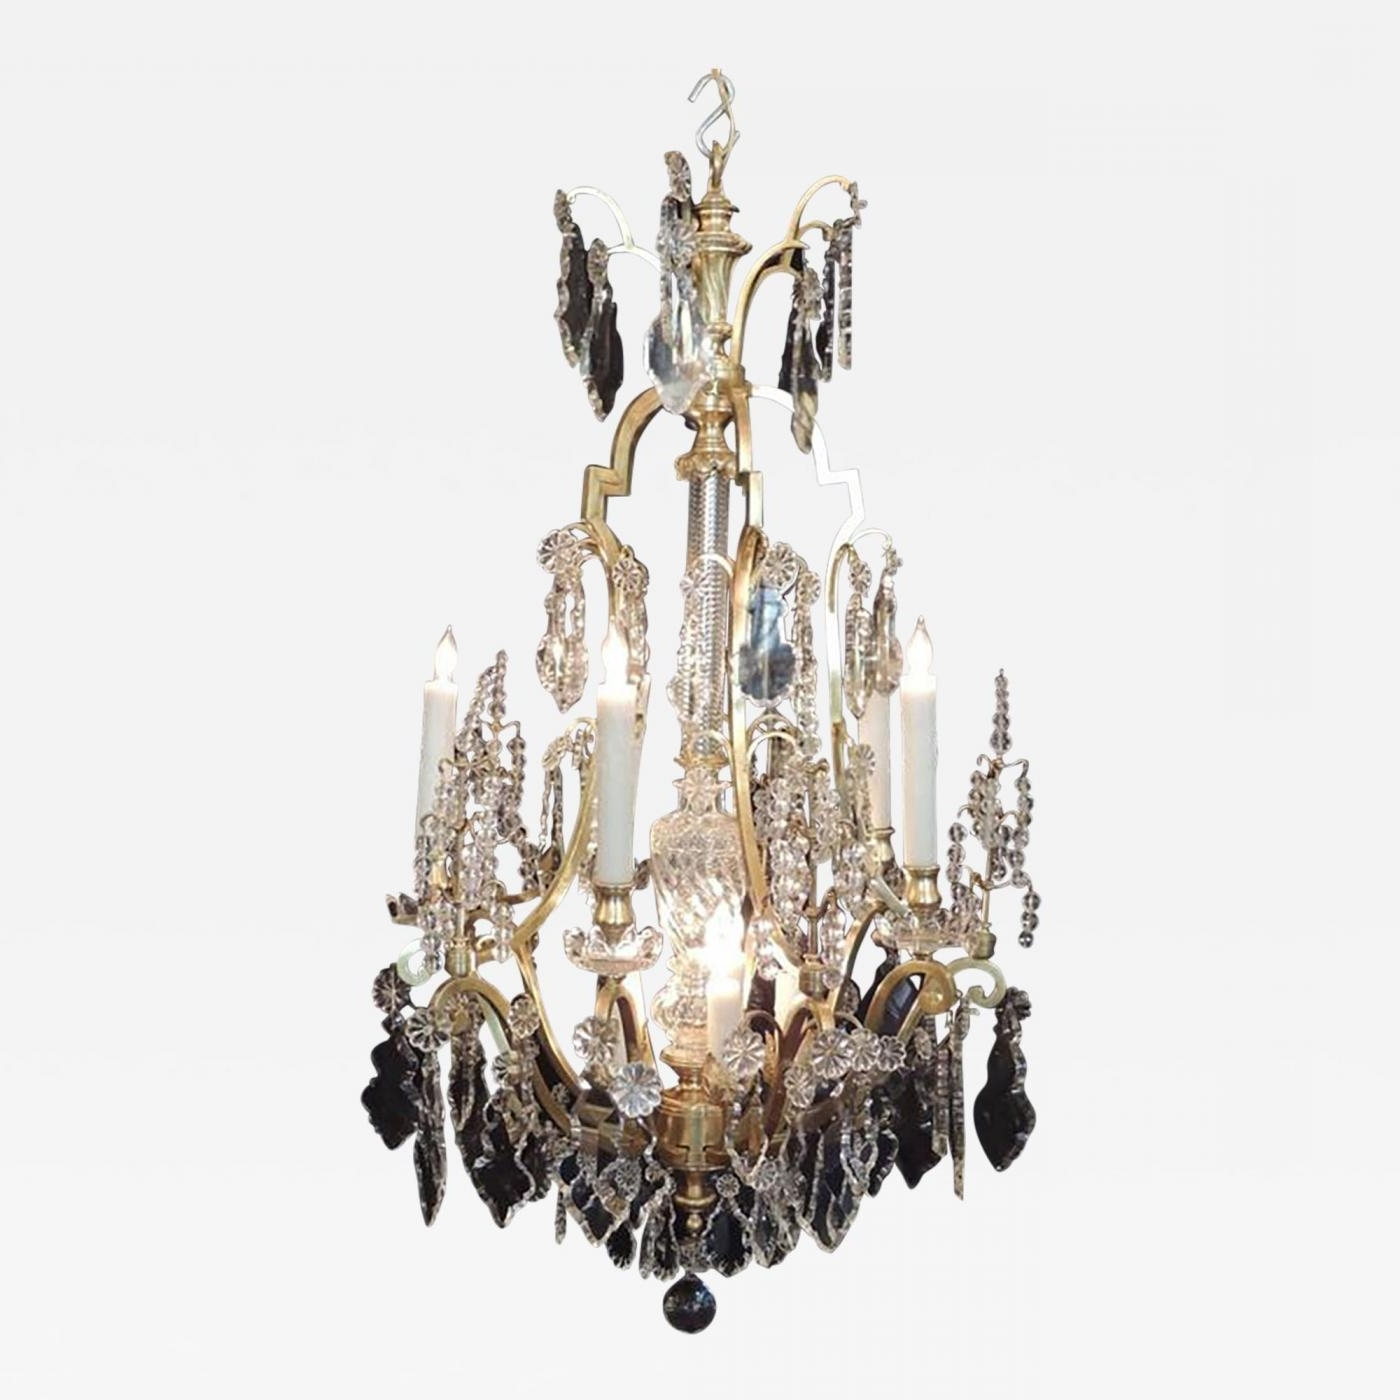 Early 20Th C French Bronze Doré And Lead Crystal Chandelier Intended For 2018 Lead Crystal Chandeliers (Gallery 8 of 15)